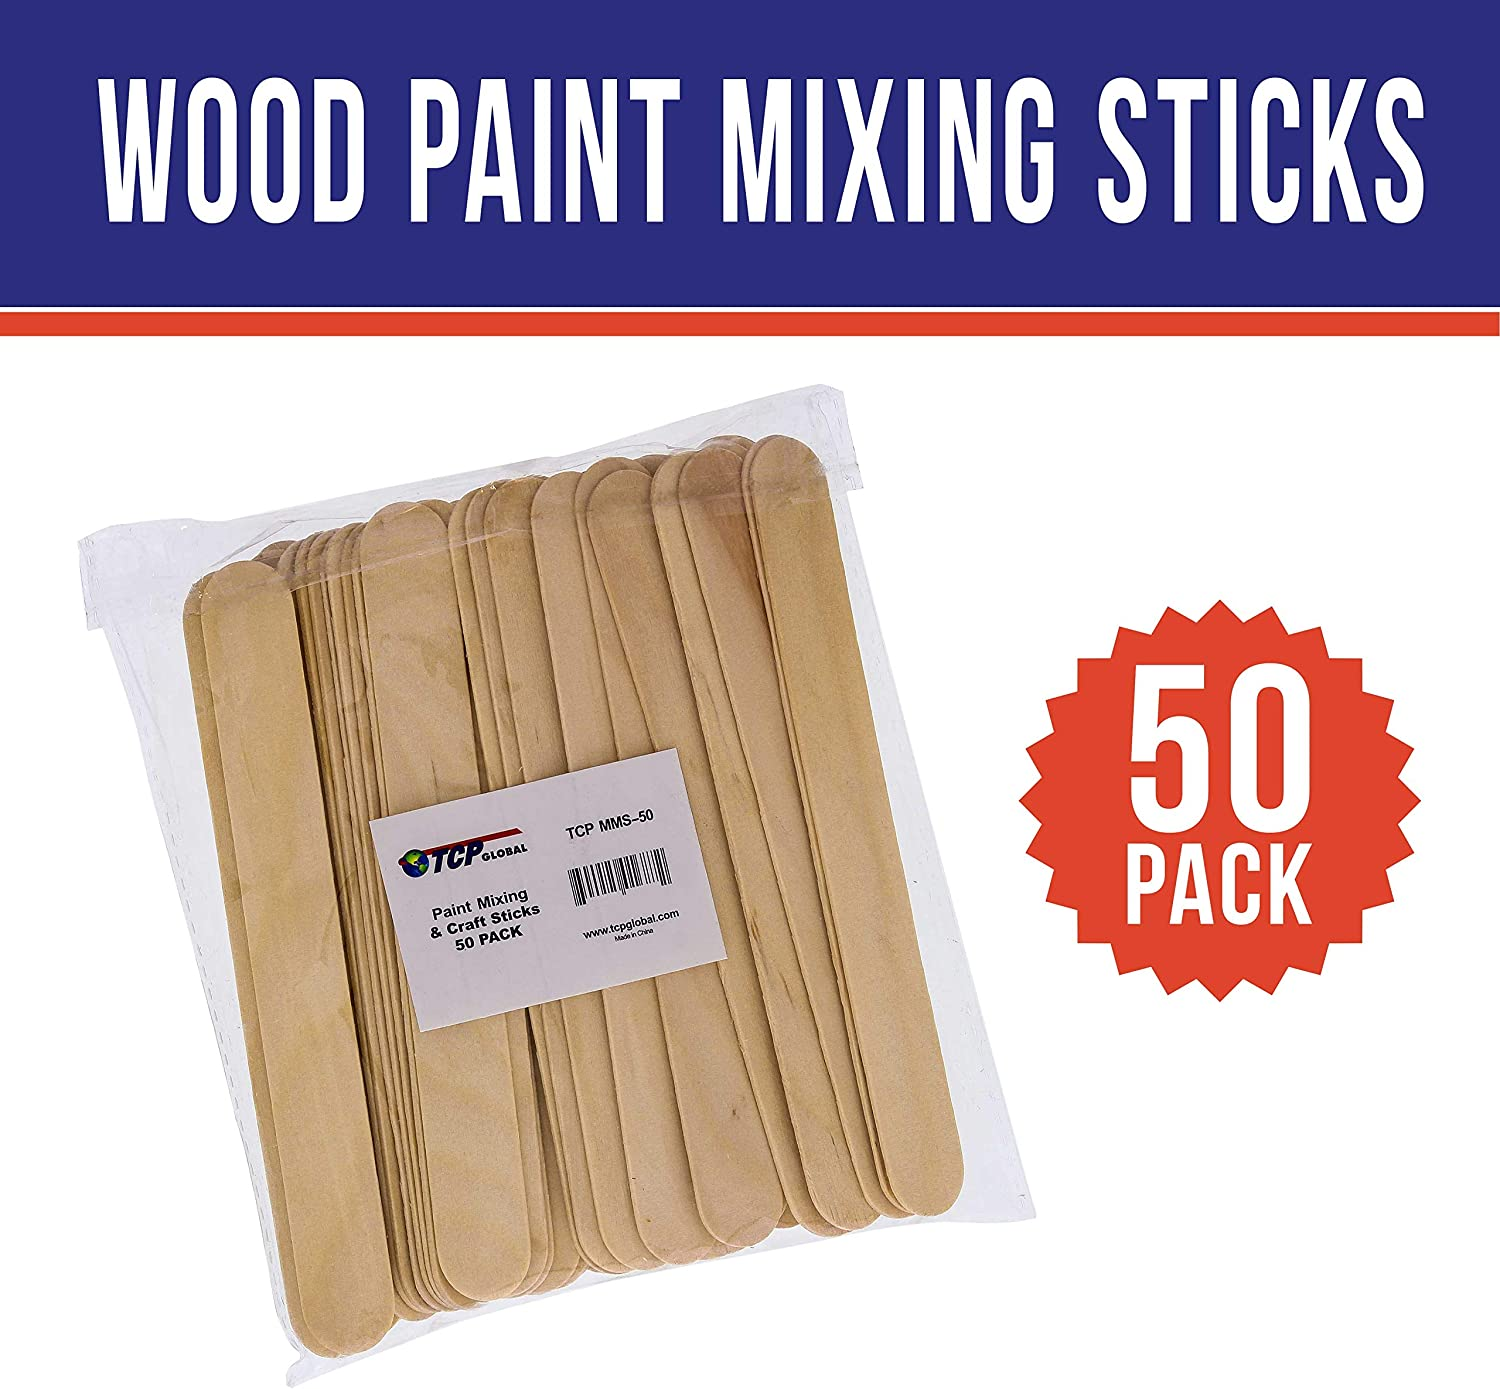 50 Pack TCP Global Wood Paint Mixing Sticks Automotive Crafts Airbrush Art